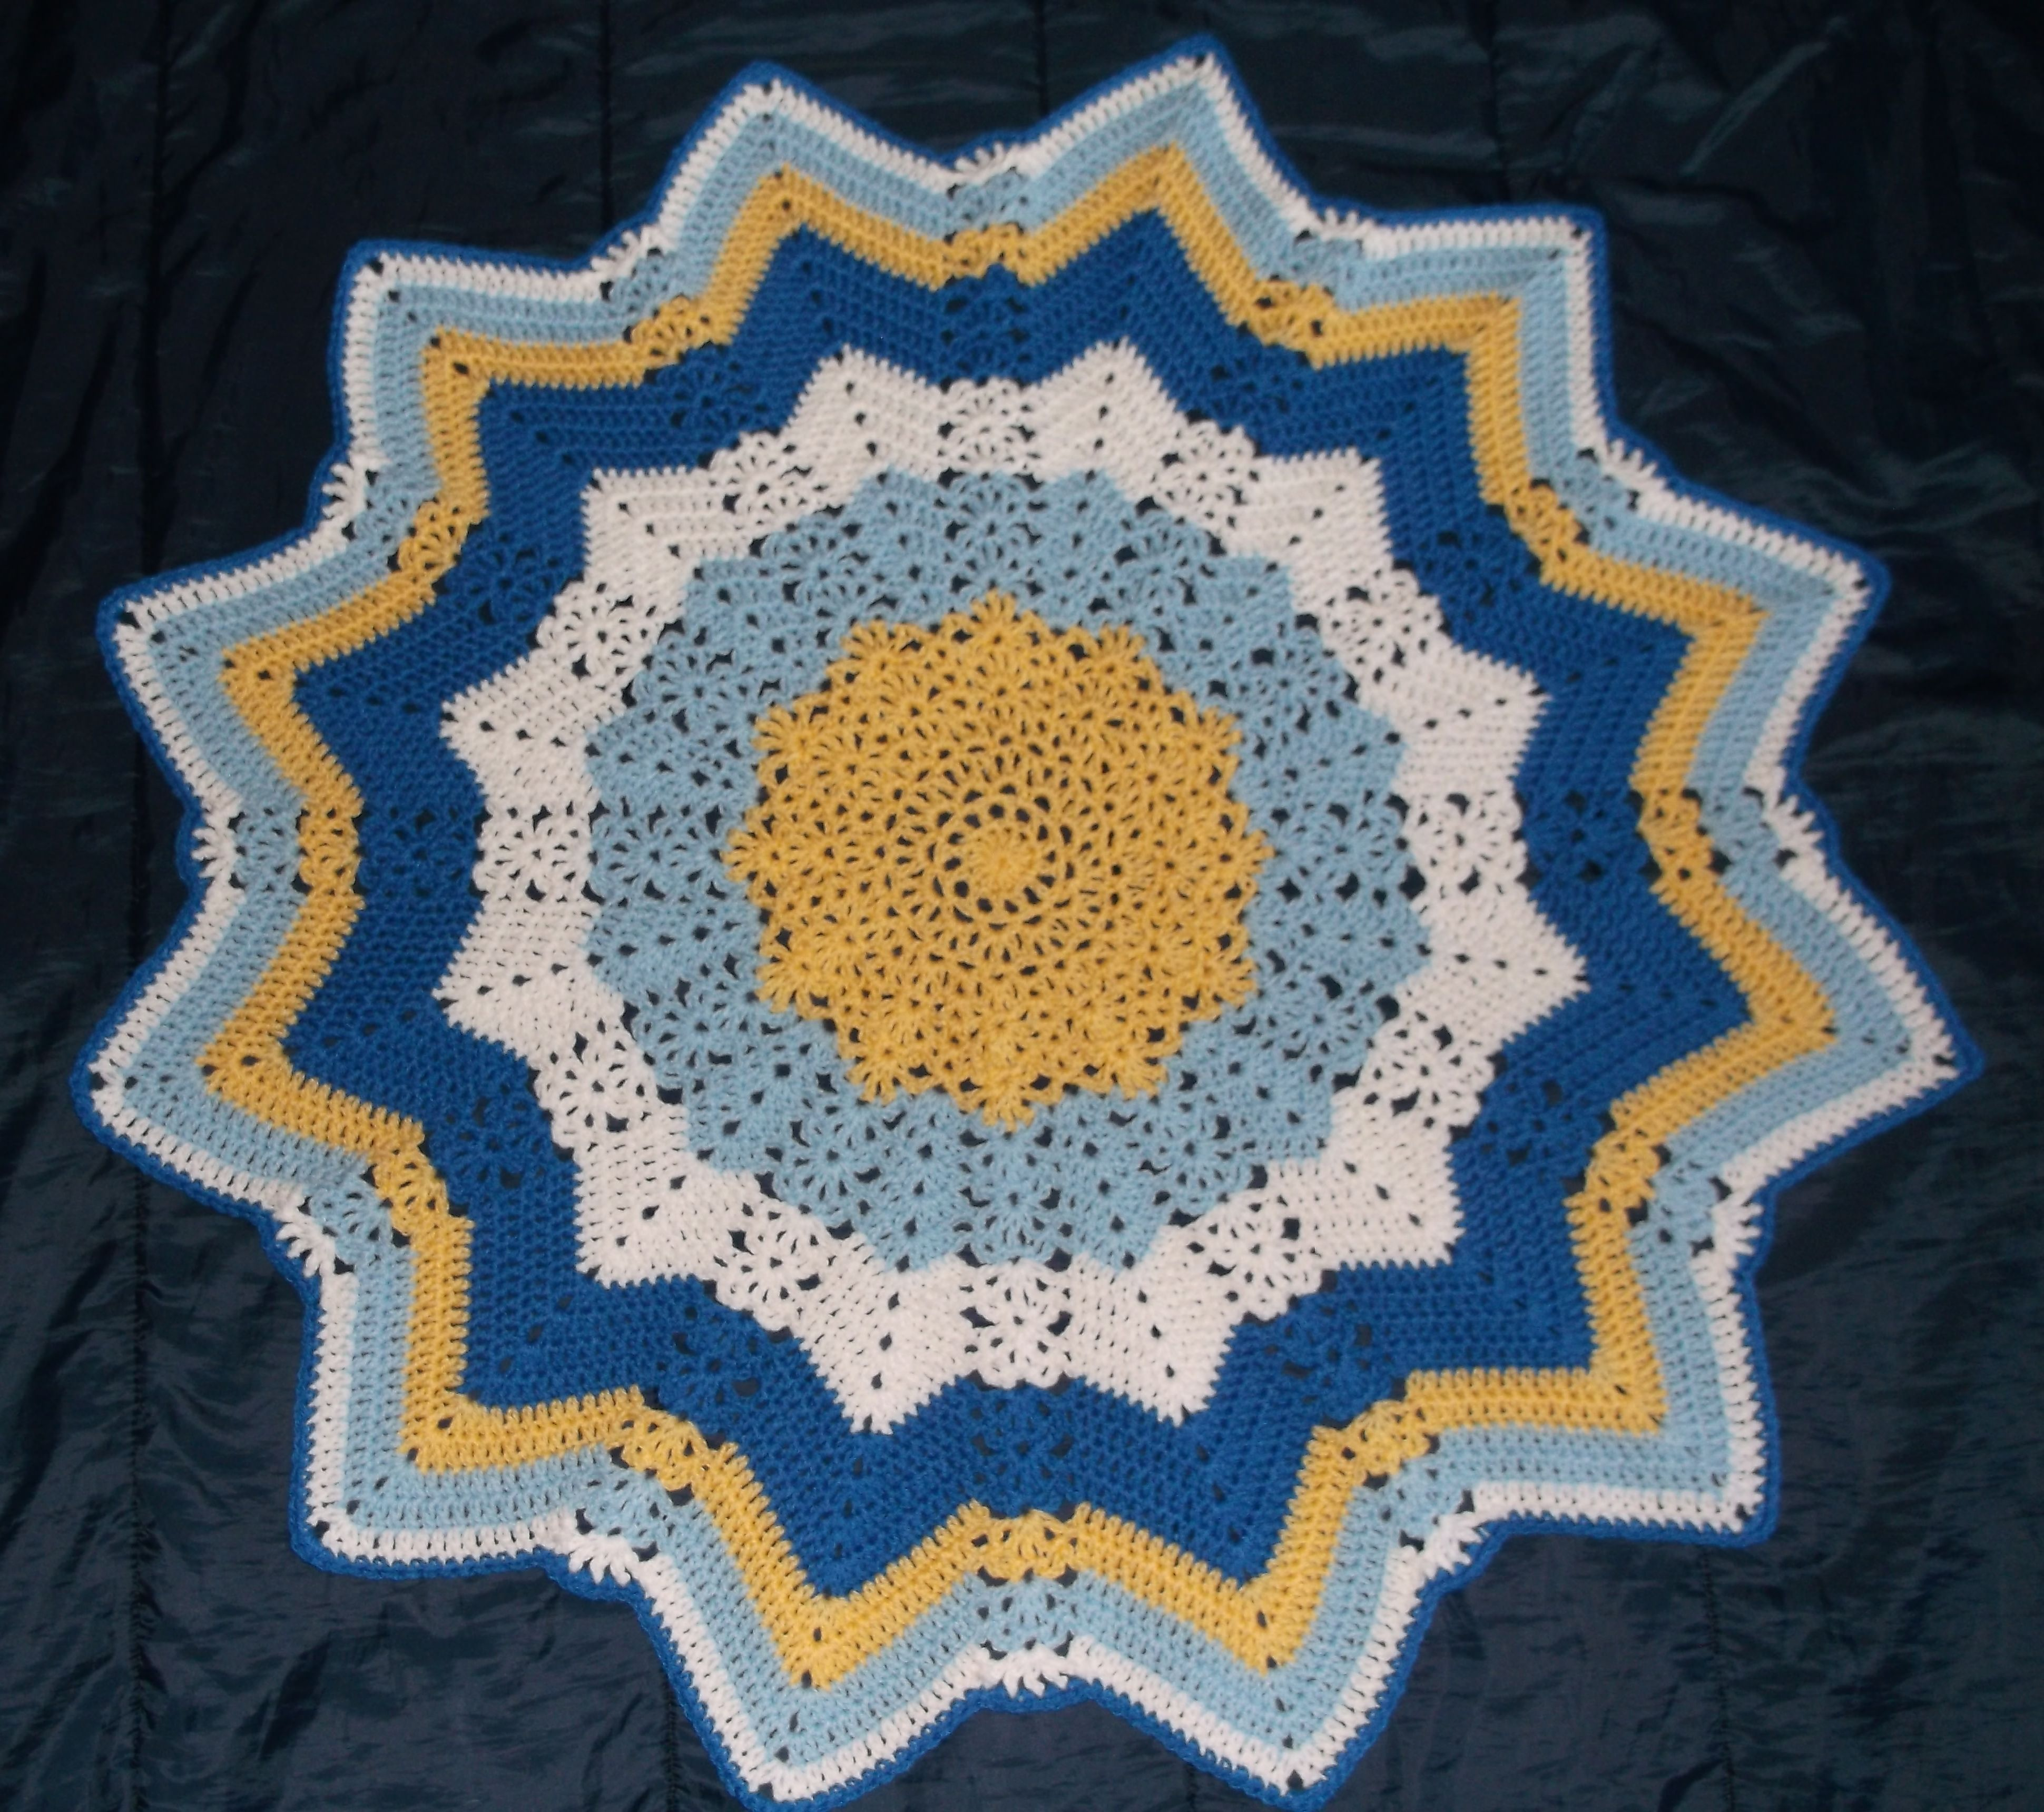 Lacy round ripple crochet afghan httpblogsetuckerknit find this pin and more on crochet afghans blankets bankloansurffo Images